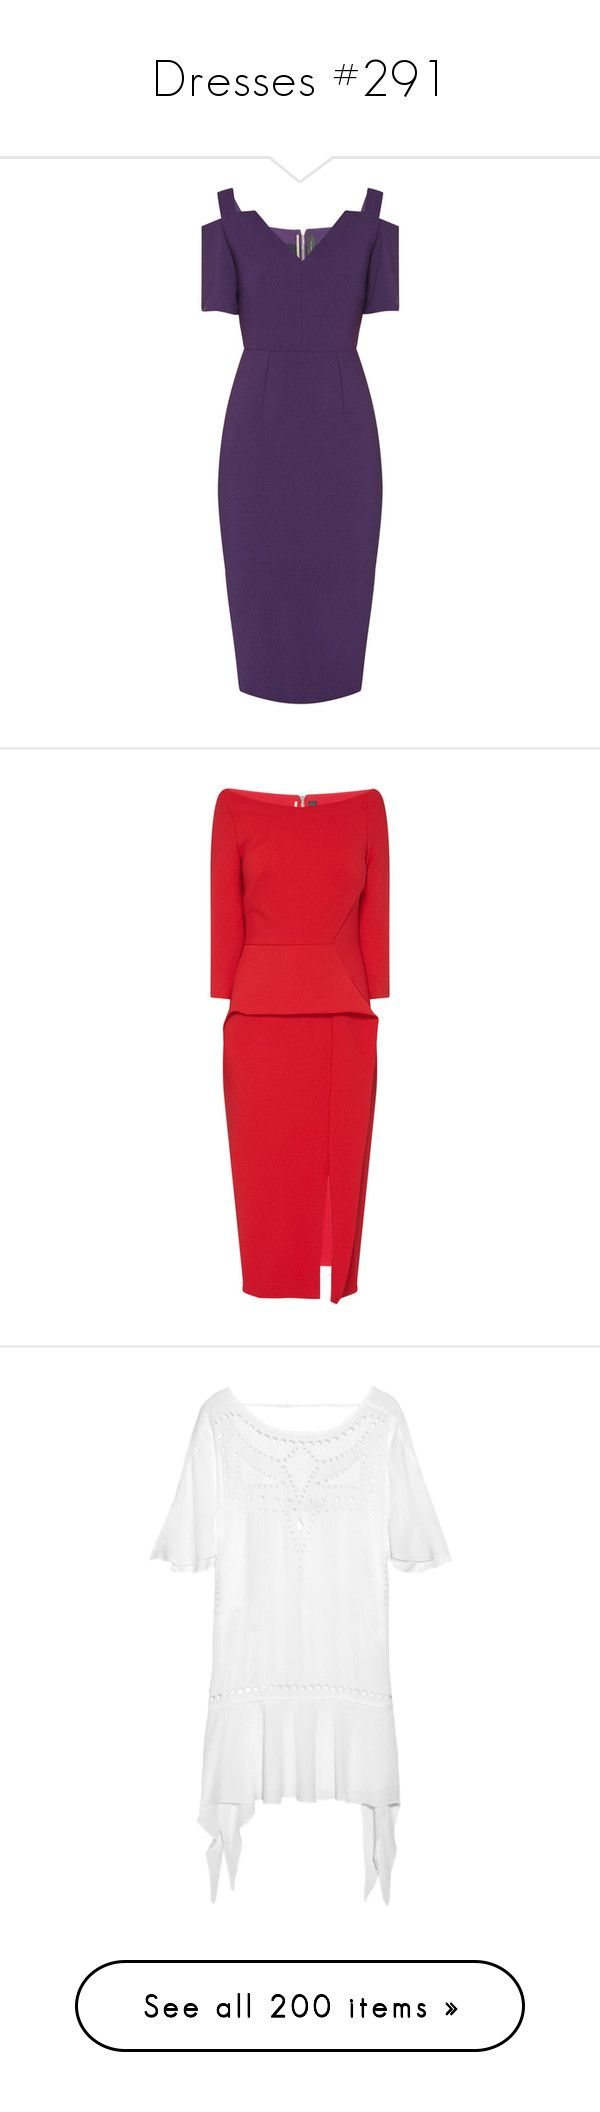 """Dresses #291"" by bliznec ❤ liked on Polyvore featuring dresses, v-neck dresses, crepe dress, drape sleeve dress, below the knee dresses, pencil dresses, red dress, roland mouret dress, peplum pencil dress and pleated dresses"